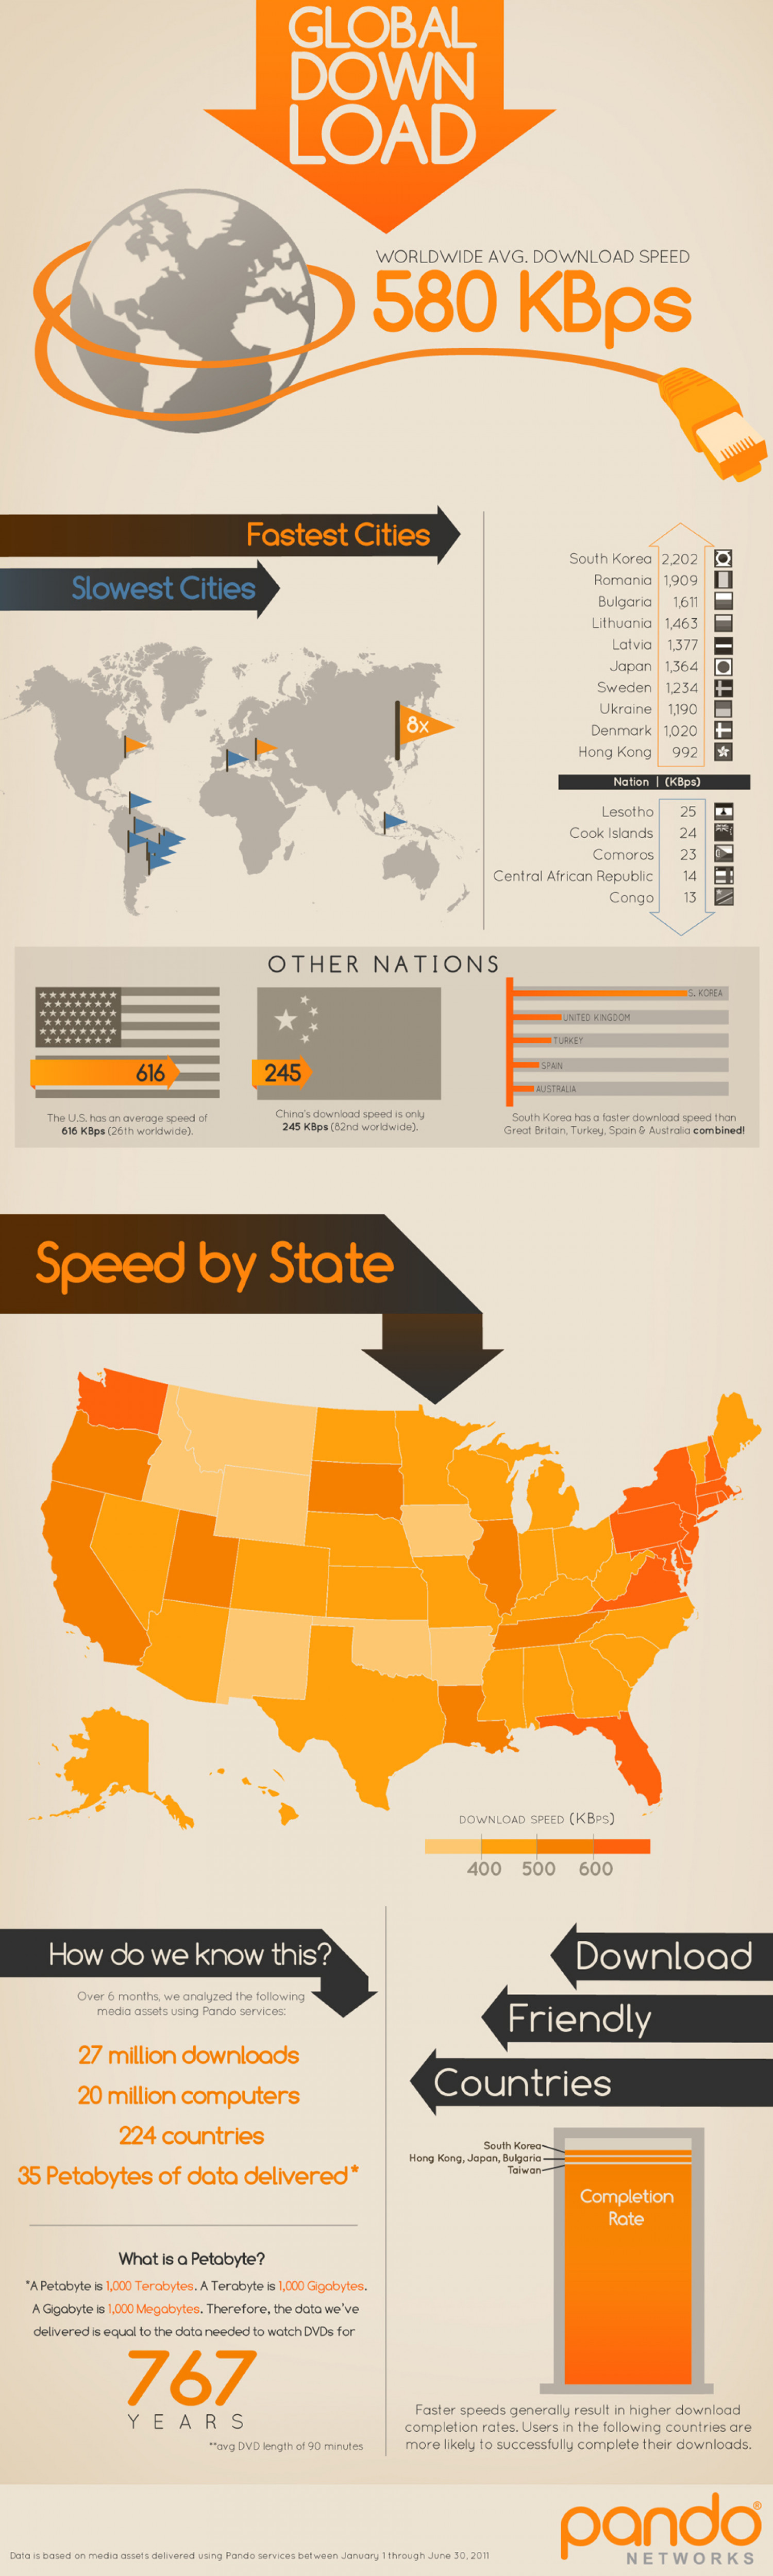 Which Country Has the World's Fastest Internet? Infographic